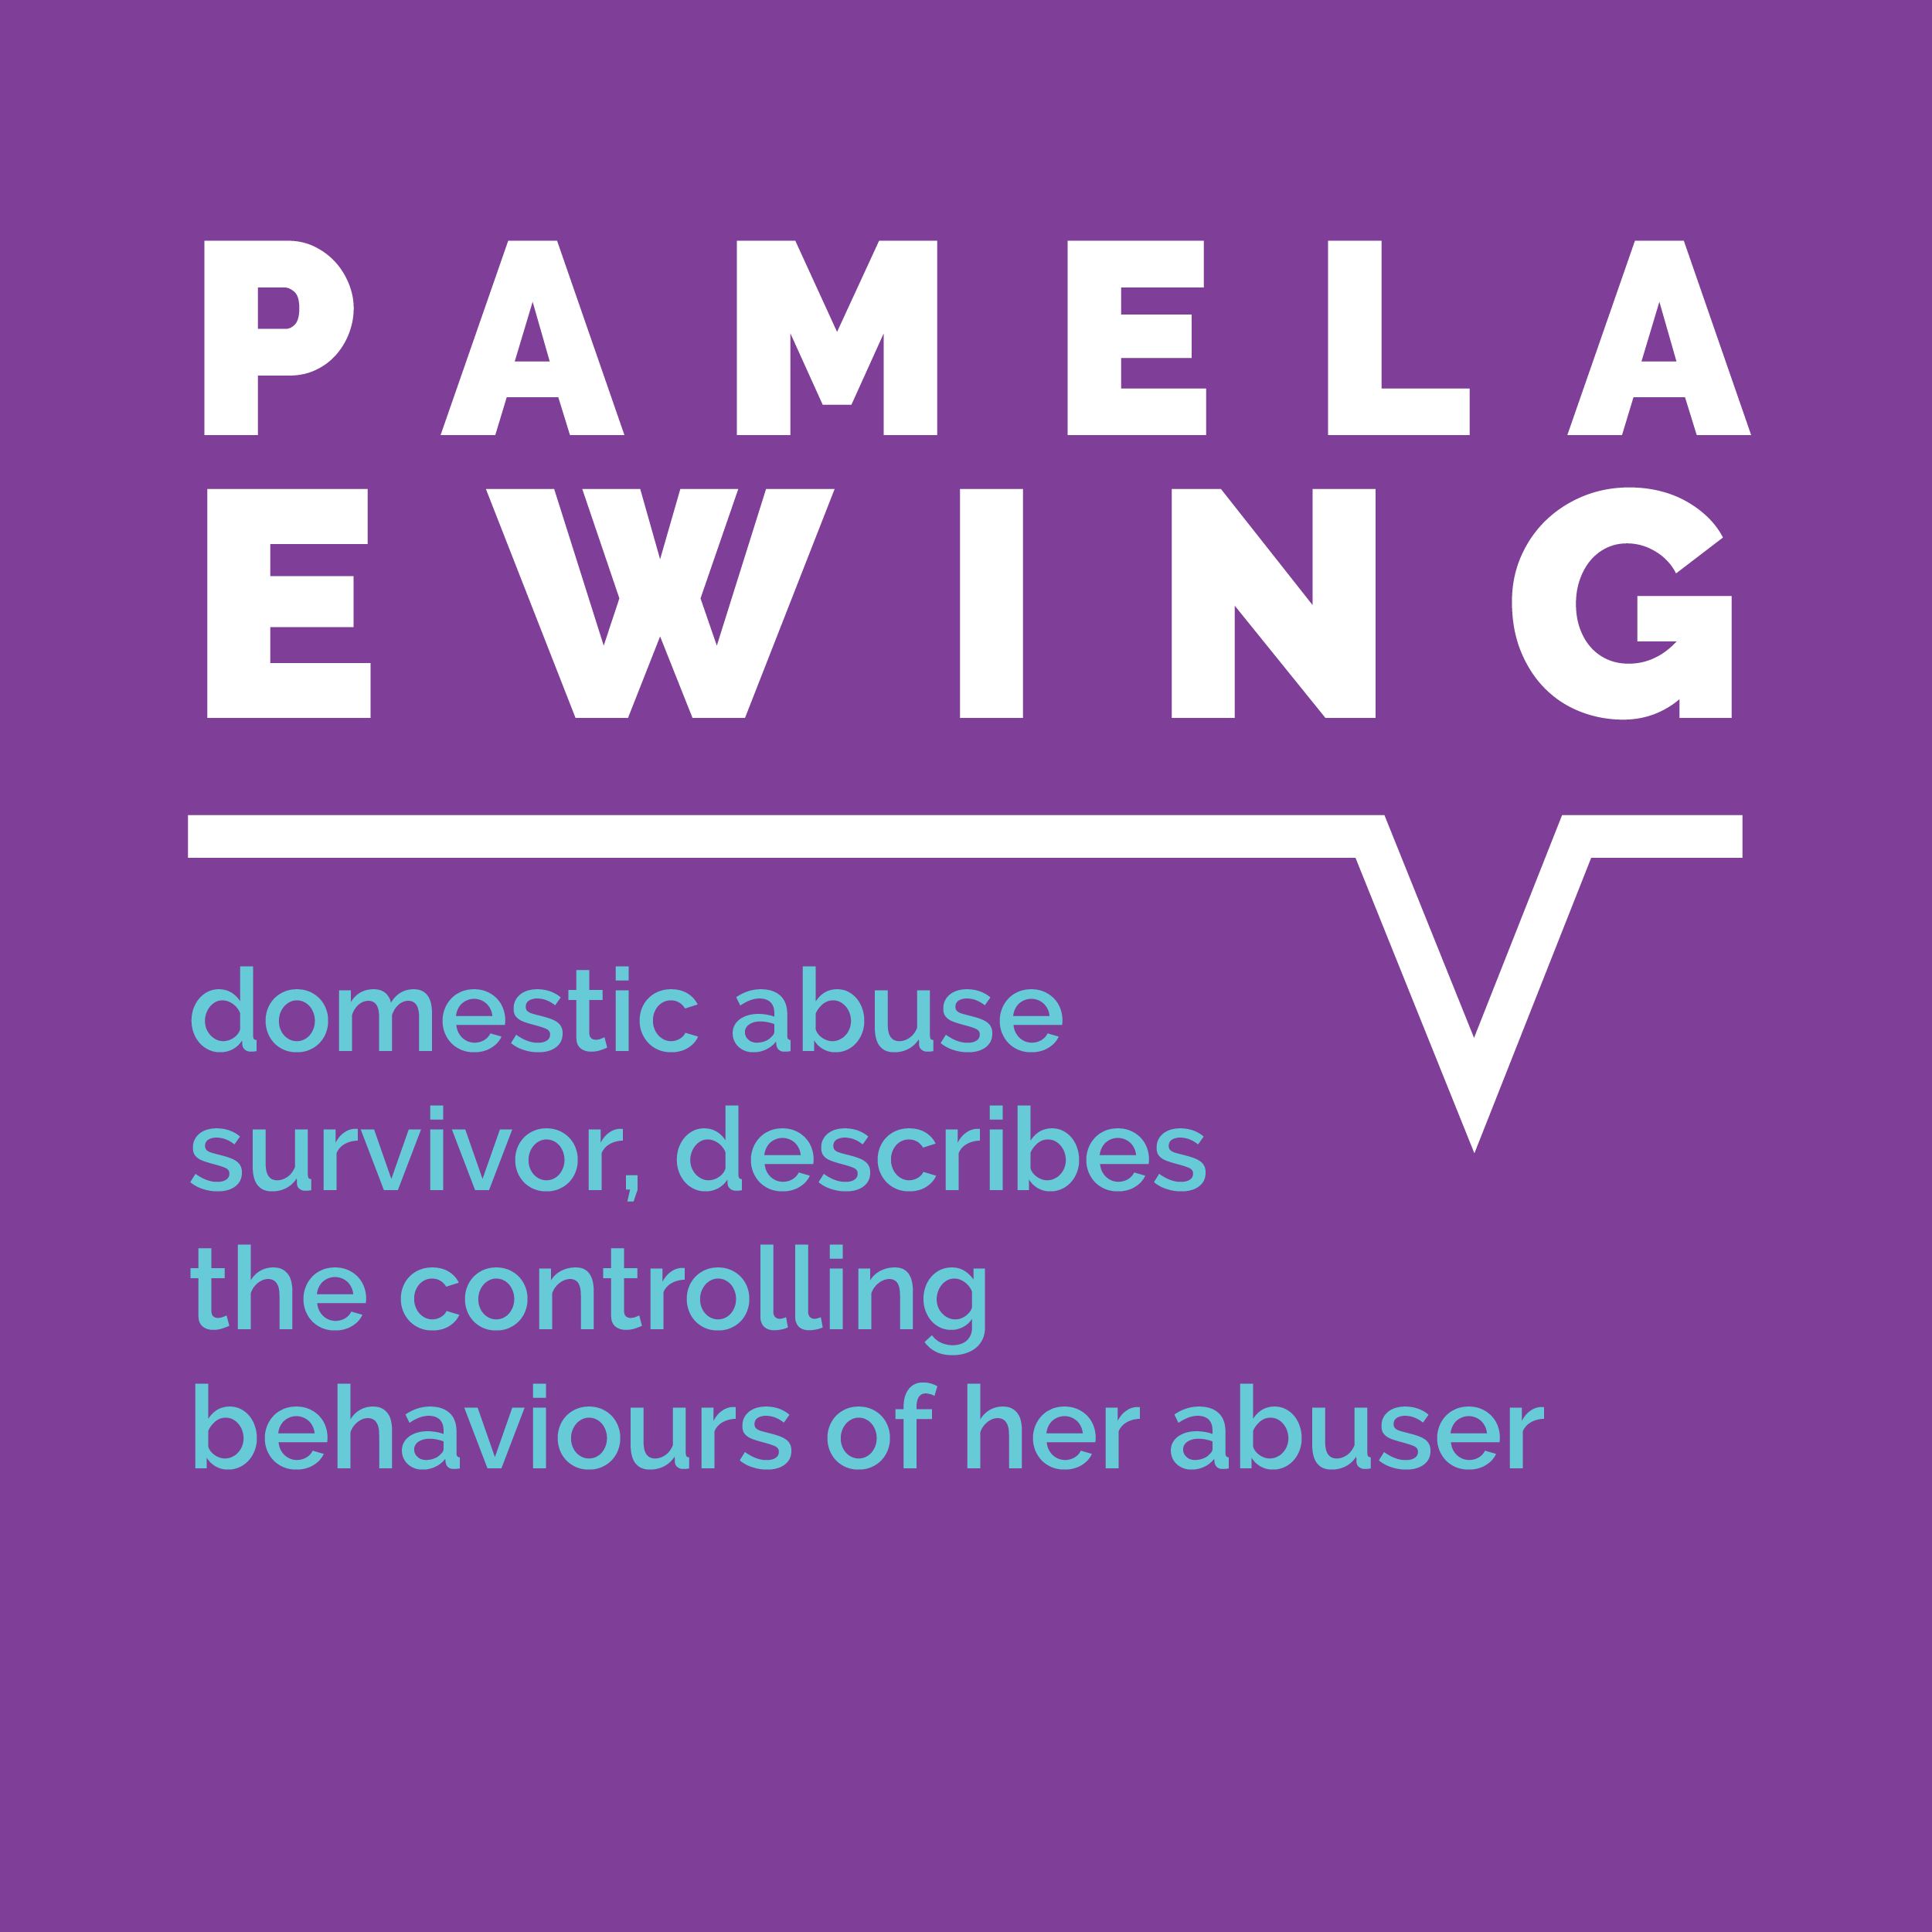 Pamela Ewing, domestic abuse survivor, describes the controlling behaviours of her abuser